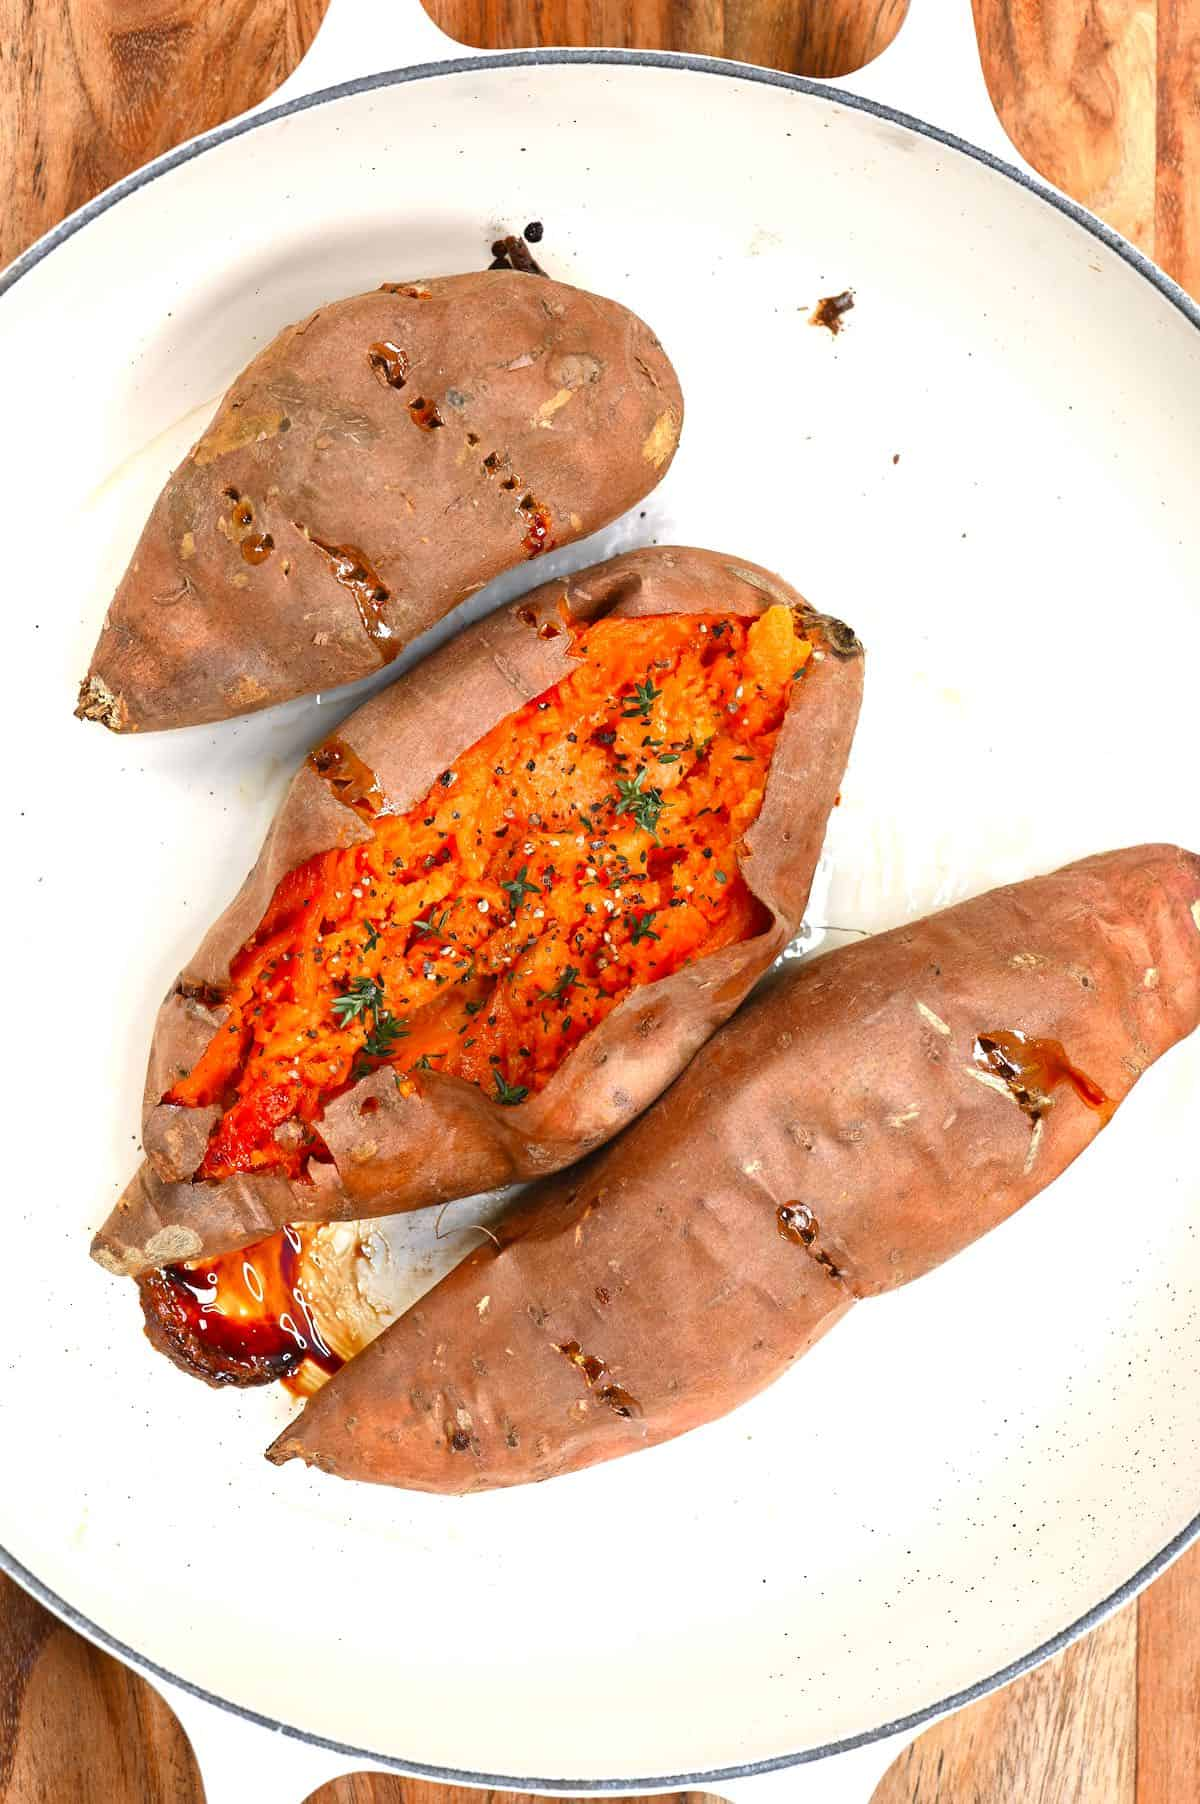 Three baked sweet potatoes with one of them open